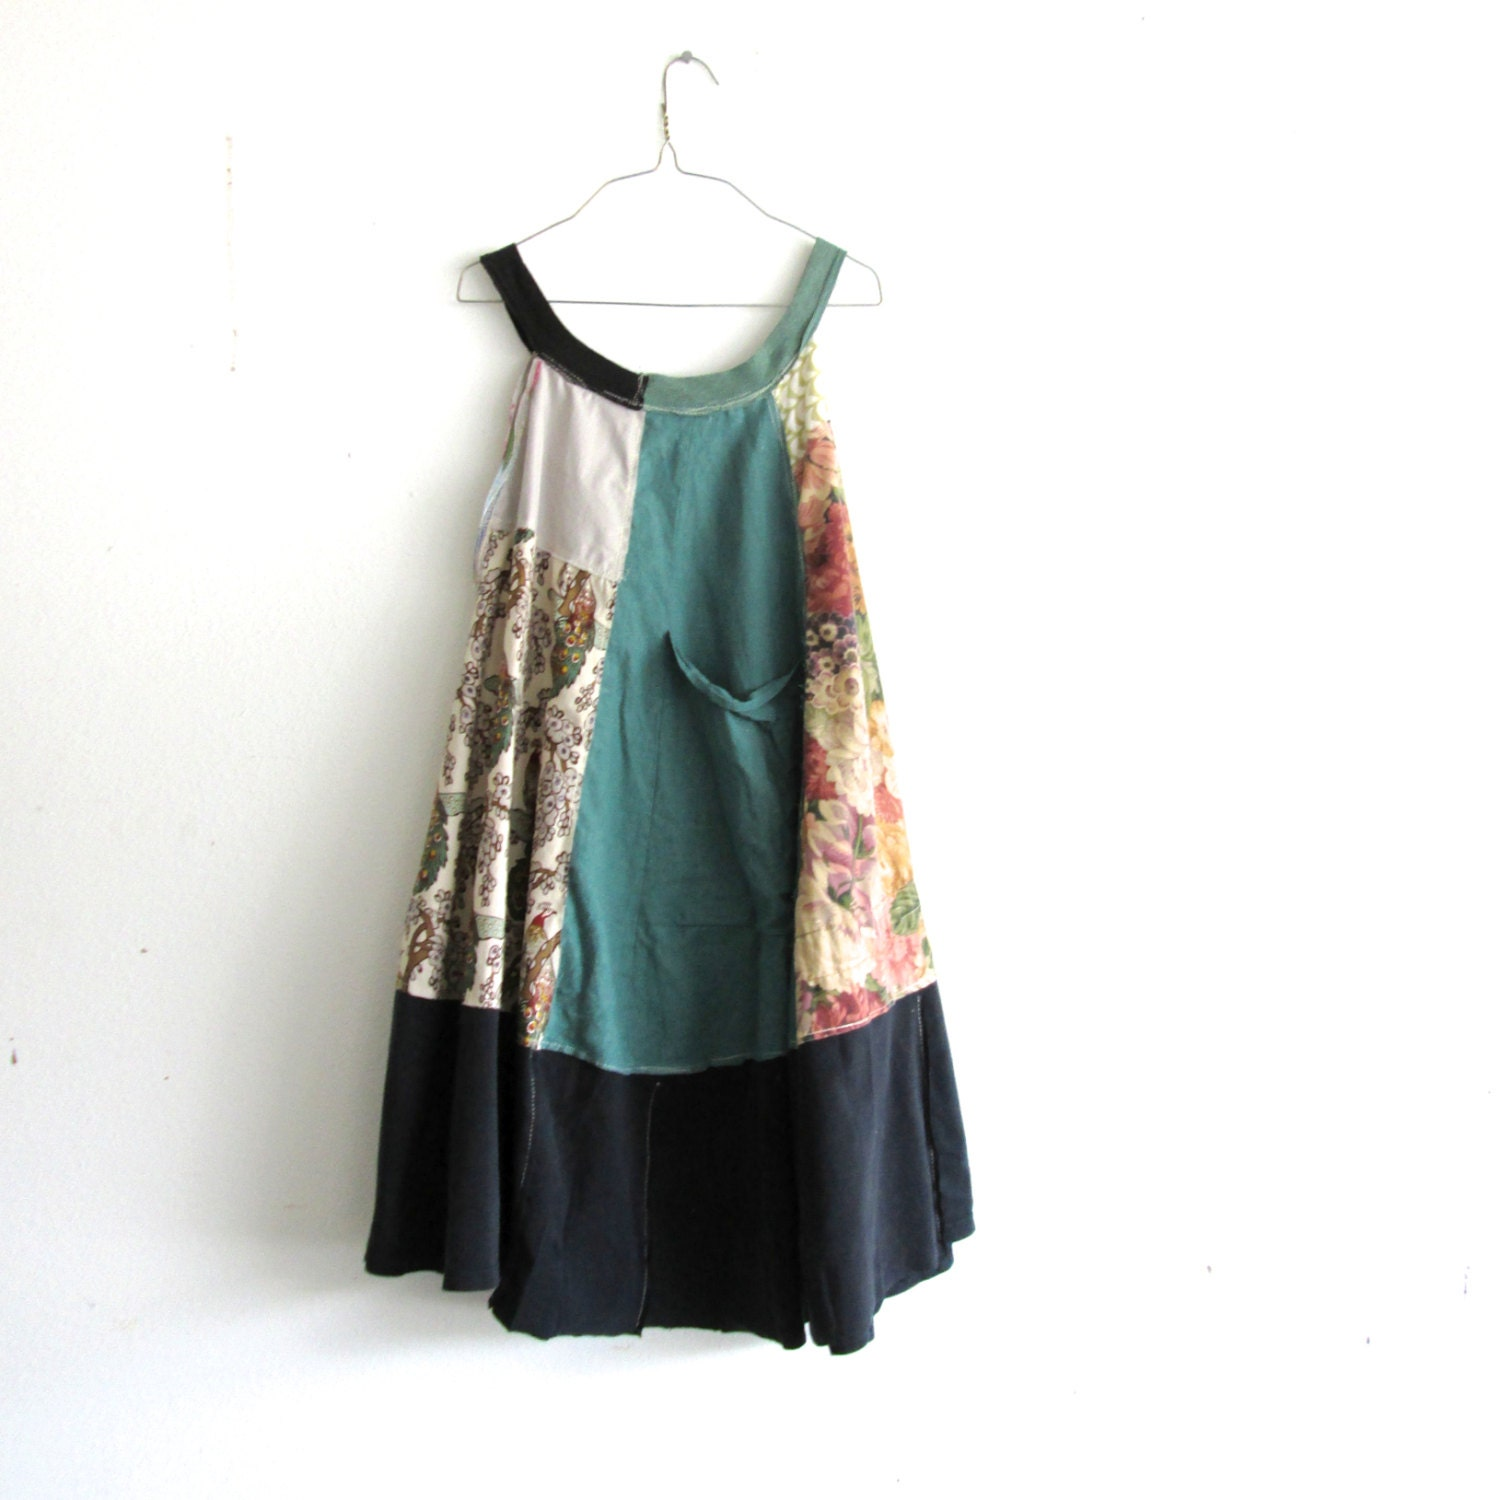 Romantic Upcycled Clothing / Patchwork Dress / Funky Tunic